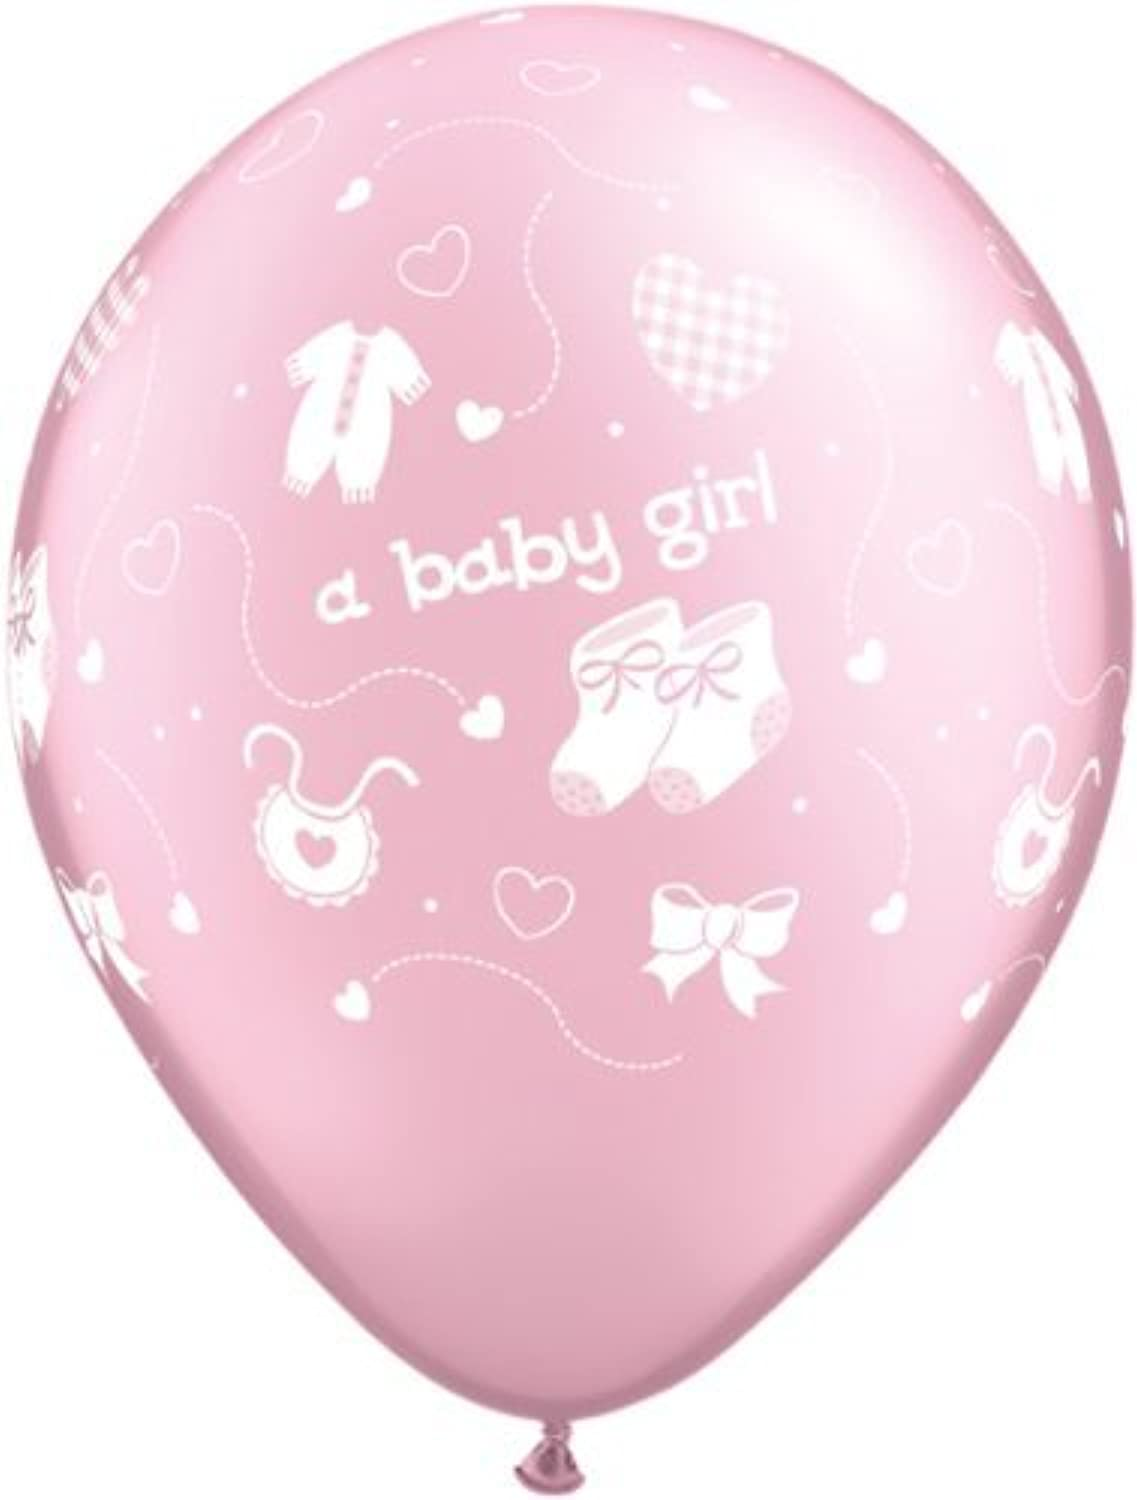 New Baby A Baby Girl Pearl Light Pink Qualatex Latex 11 Balloons x 5 by Qualatex